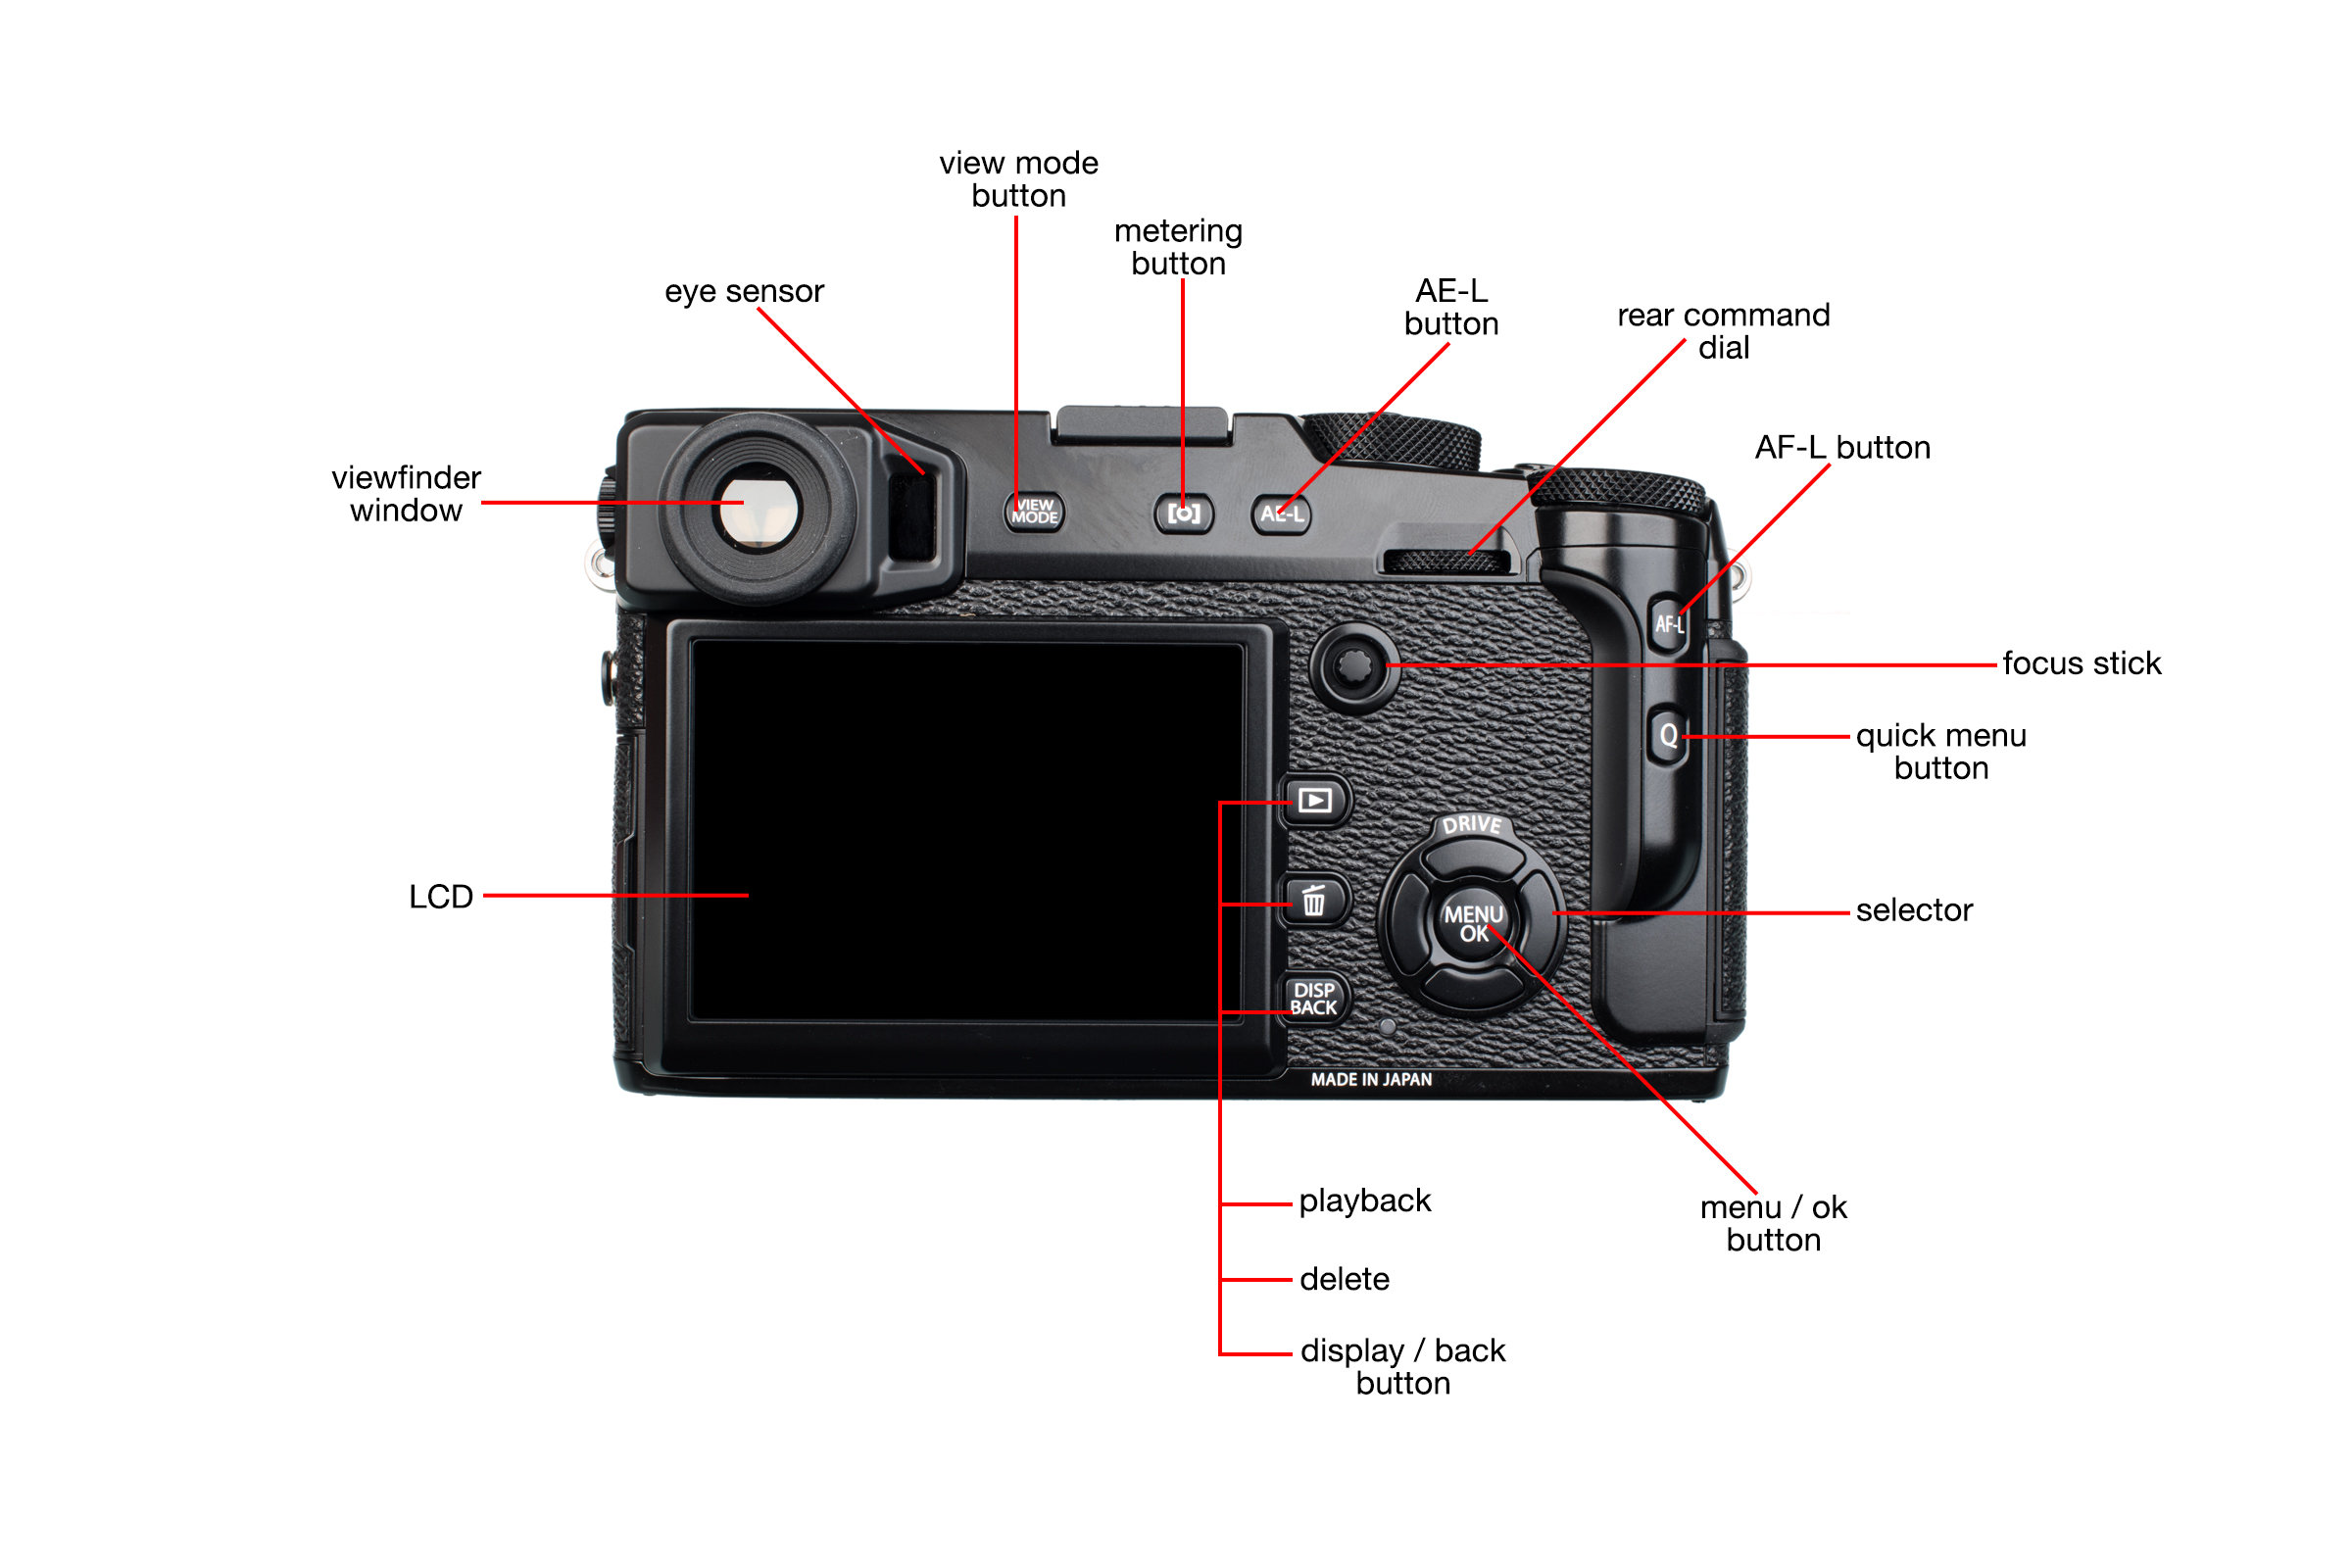 Rear view of the Fujifilm X-Pro2.